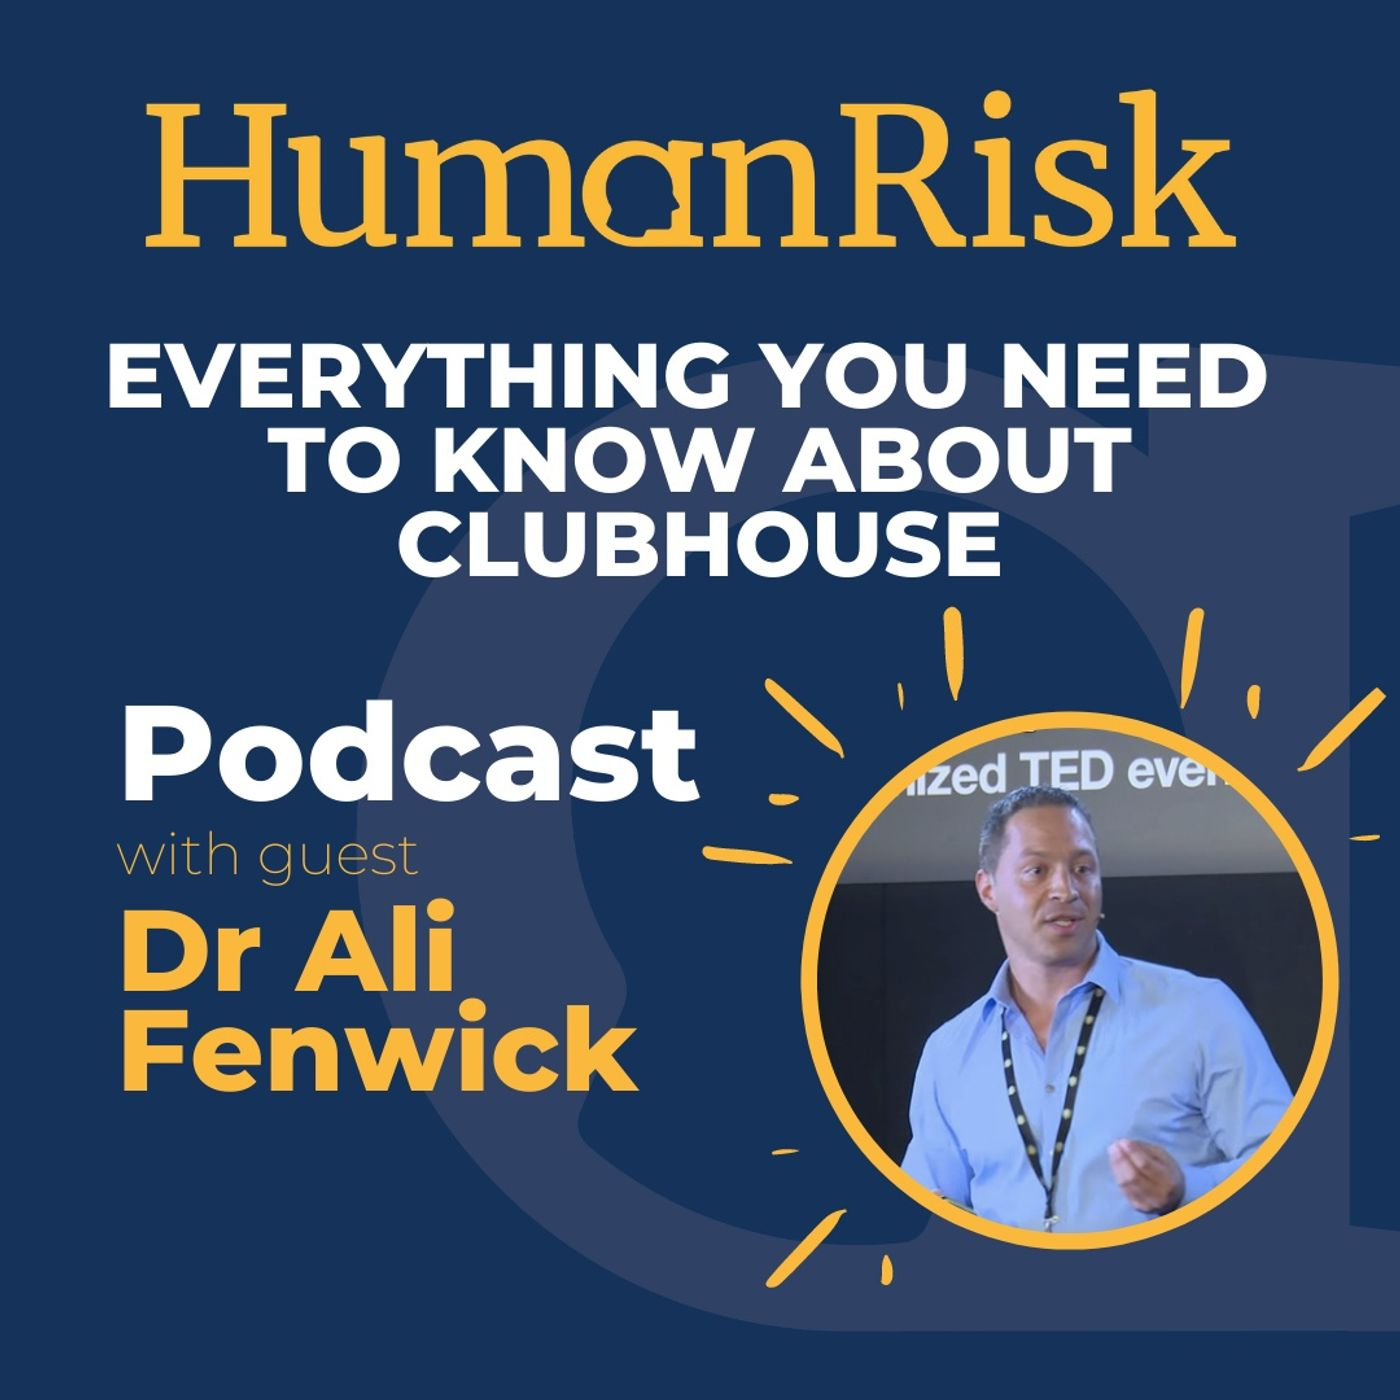 Dr Ali Fenwick on Clubhouse - what is it & why should you care?